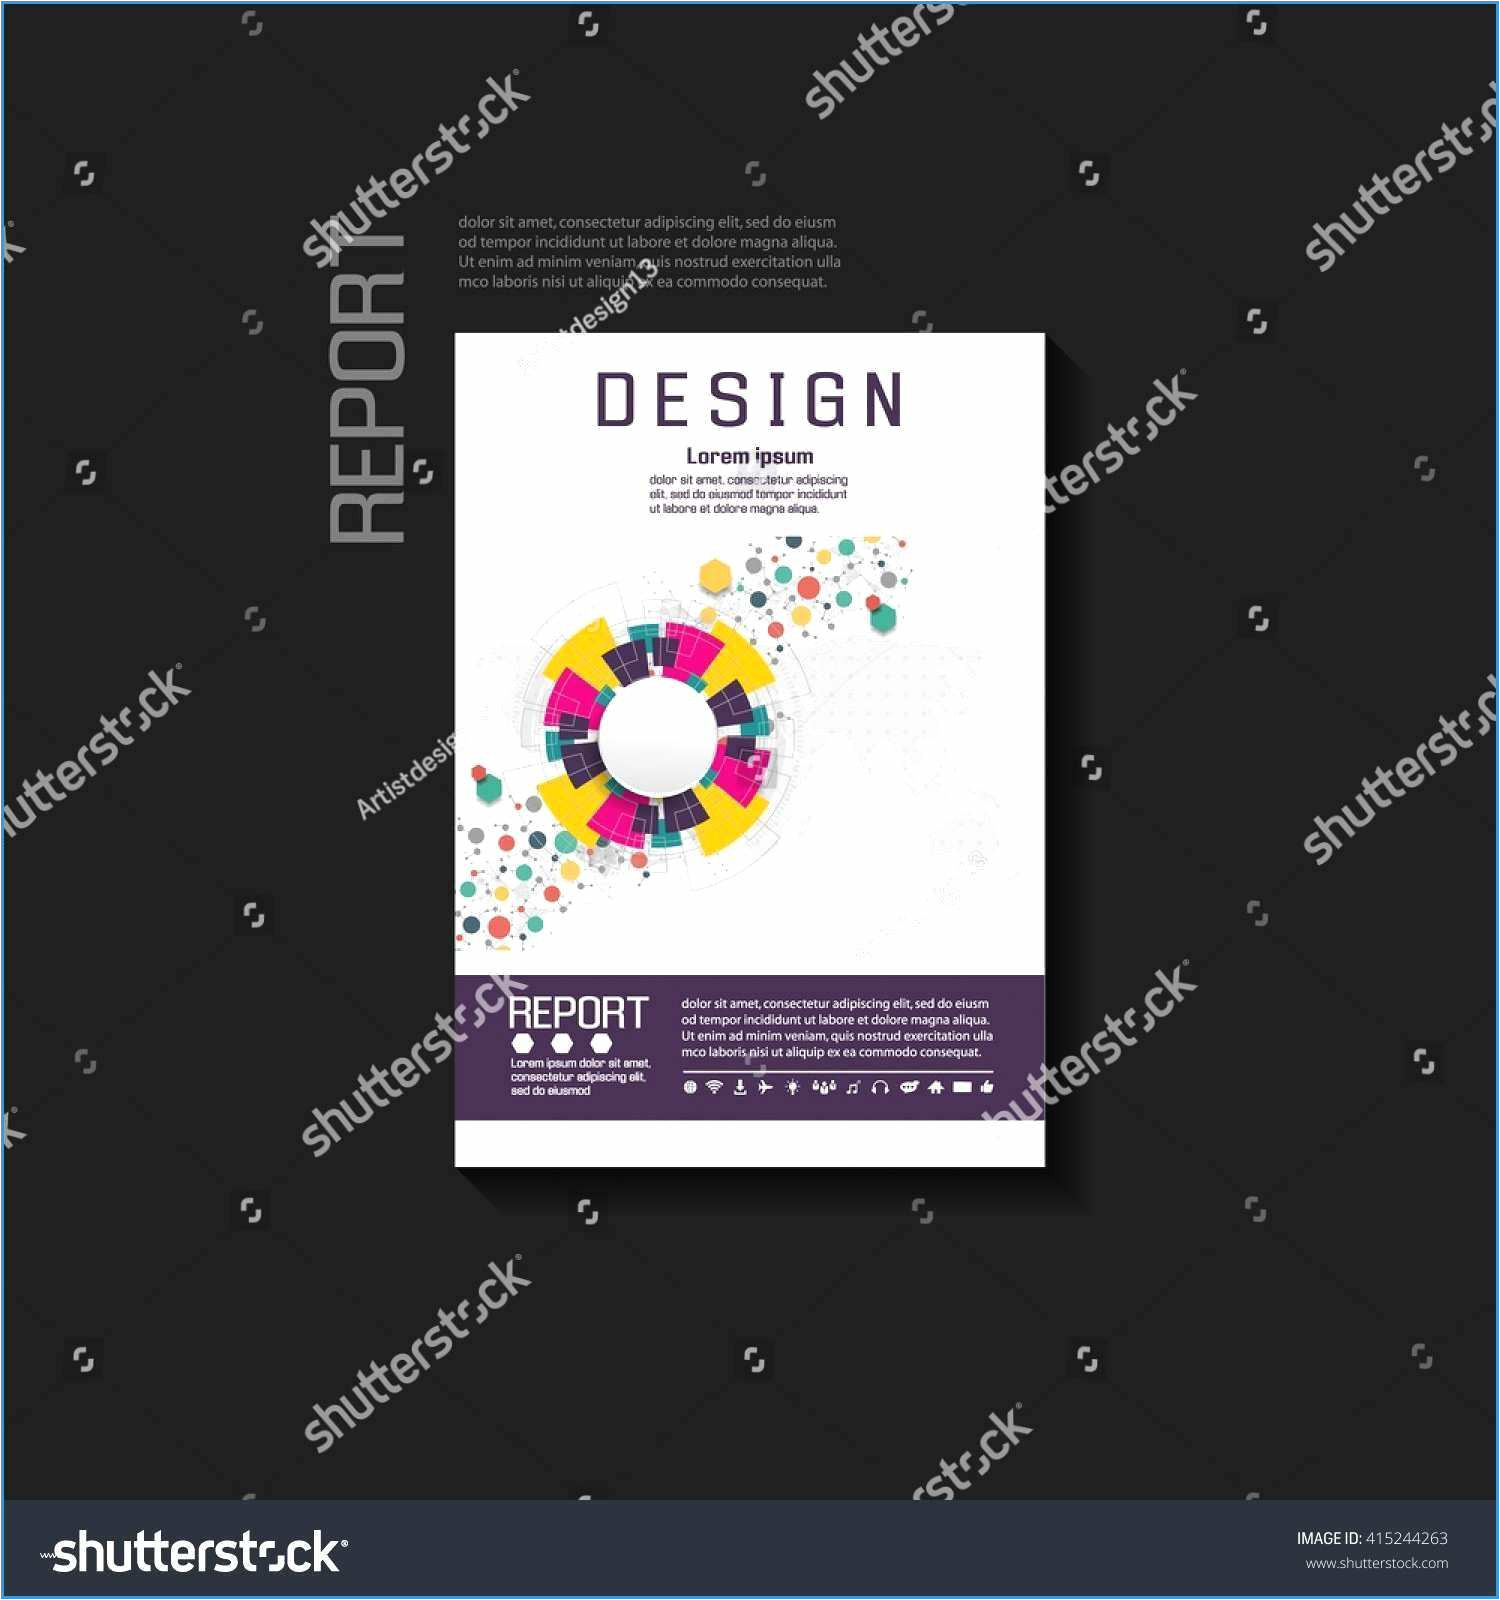 free printable religious business card templates marvelous of graphic designer business card templates of graphic designer business card templates jpg